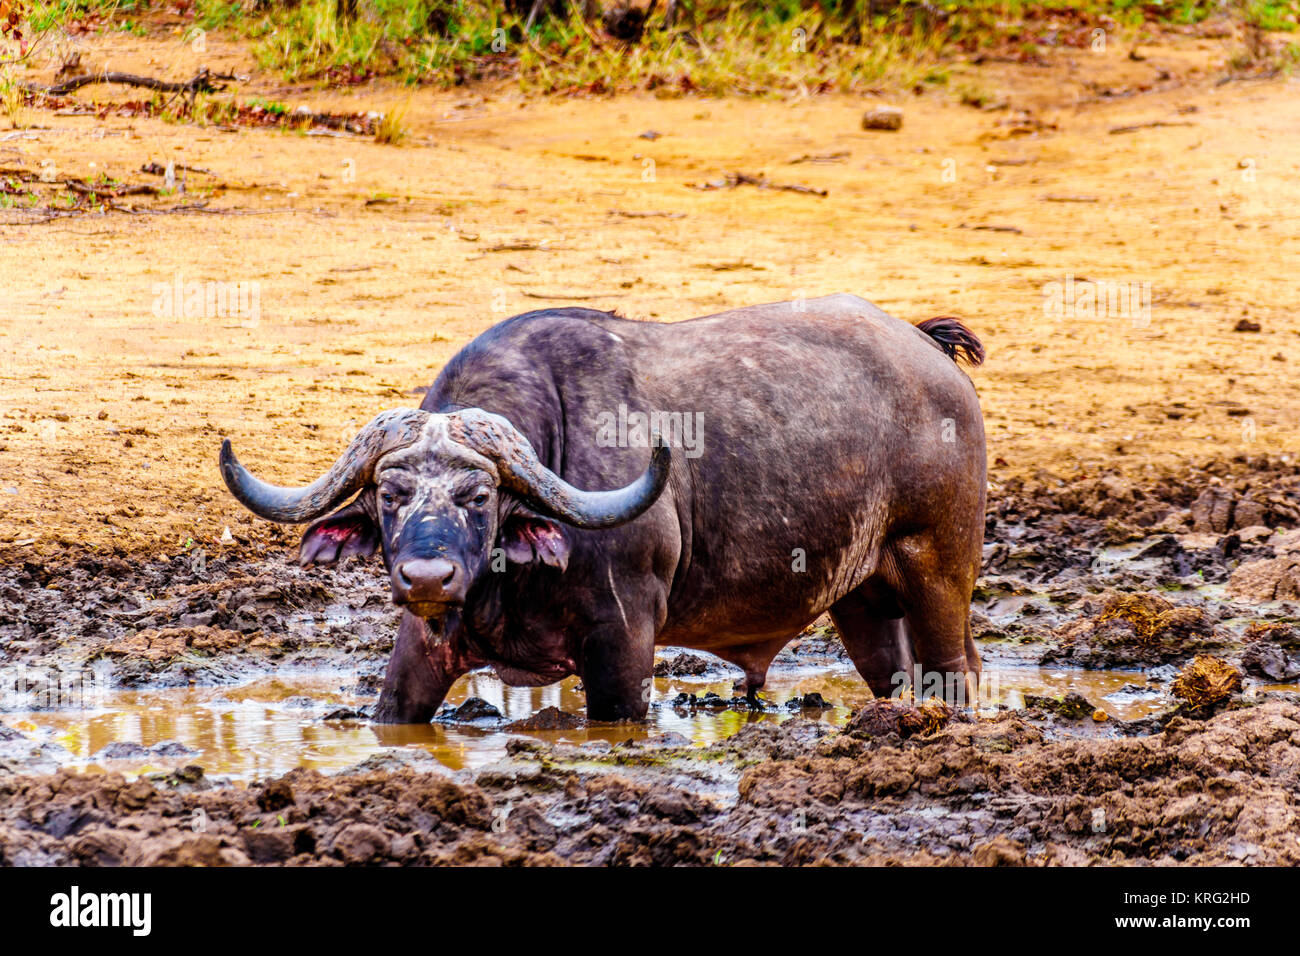 Swamp Water Buffalo standing in a pool of mud in Kruger National Park in South Africa - Stock Image